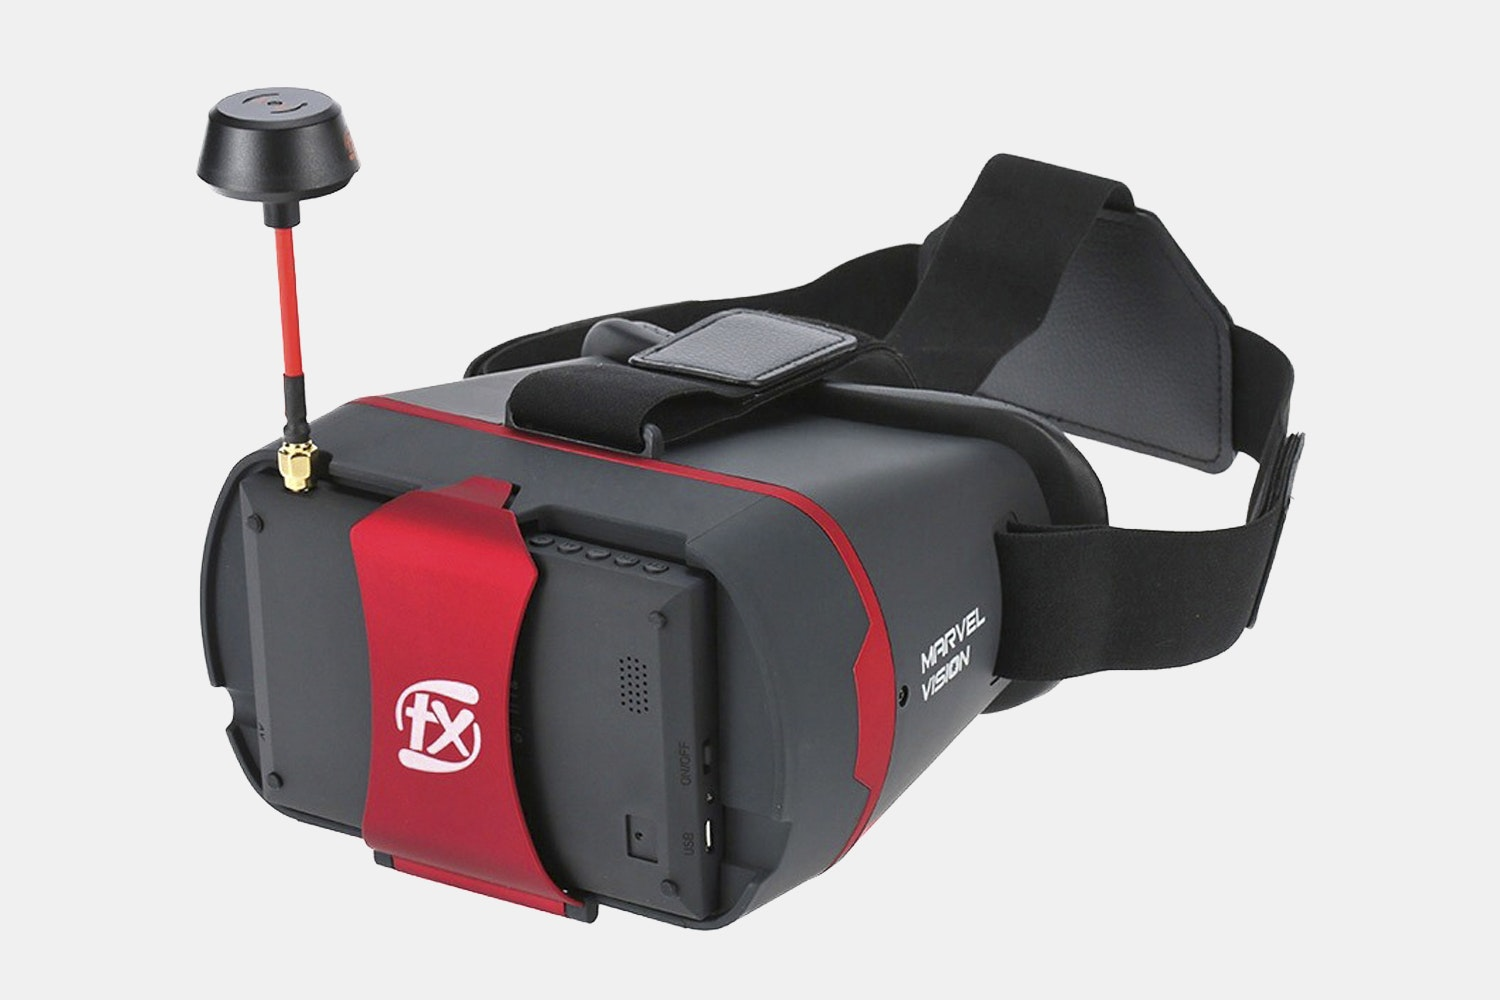 XT Marvel Vision 5.8GHz FPV goggles (+ $99)